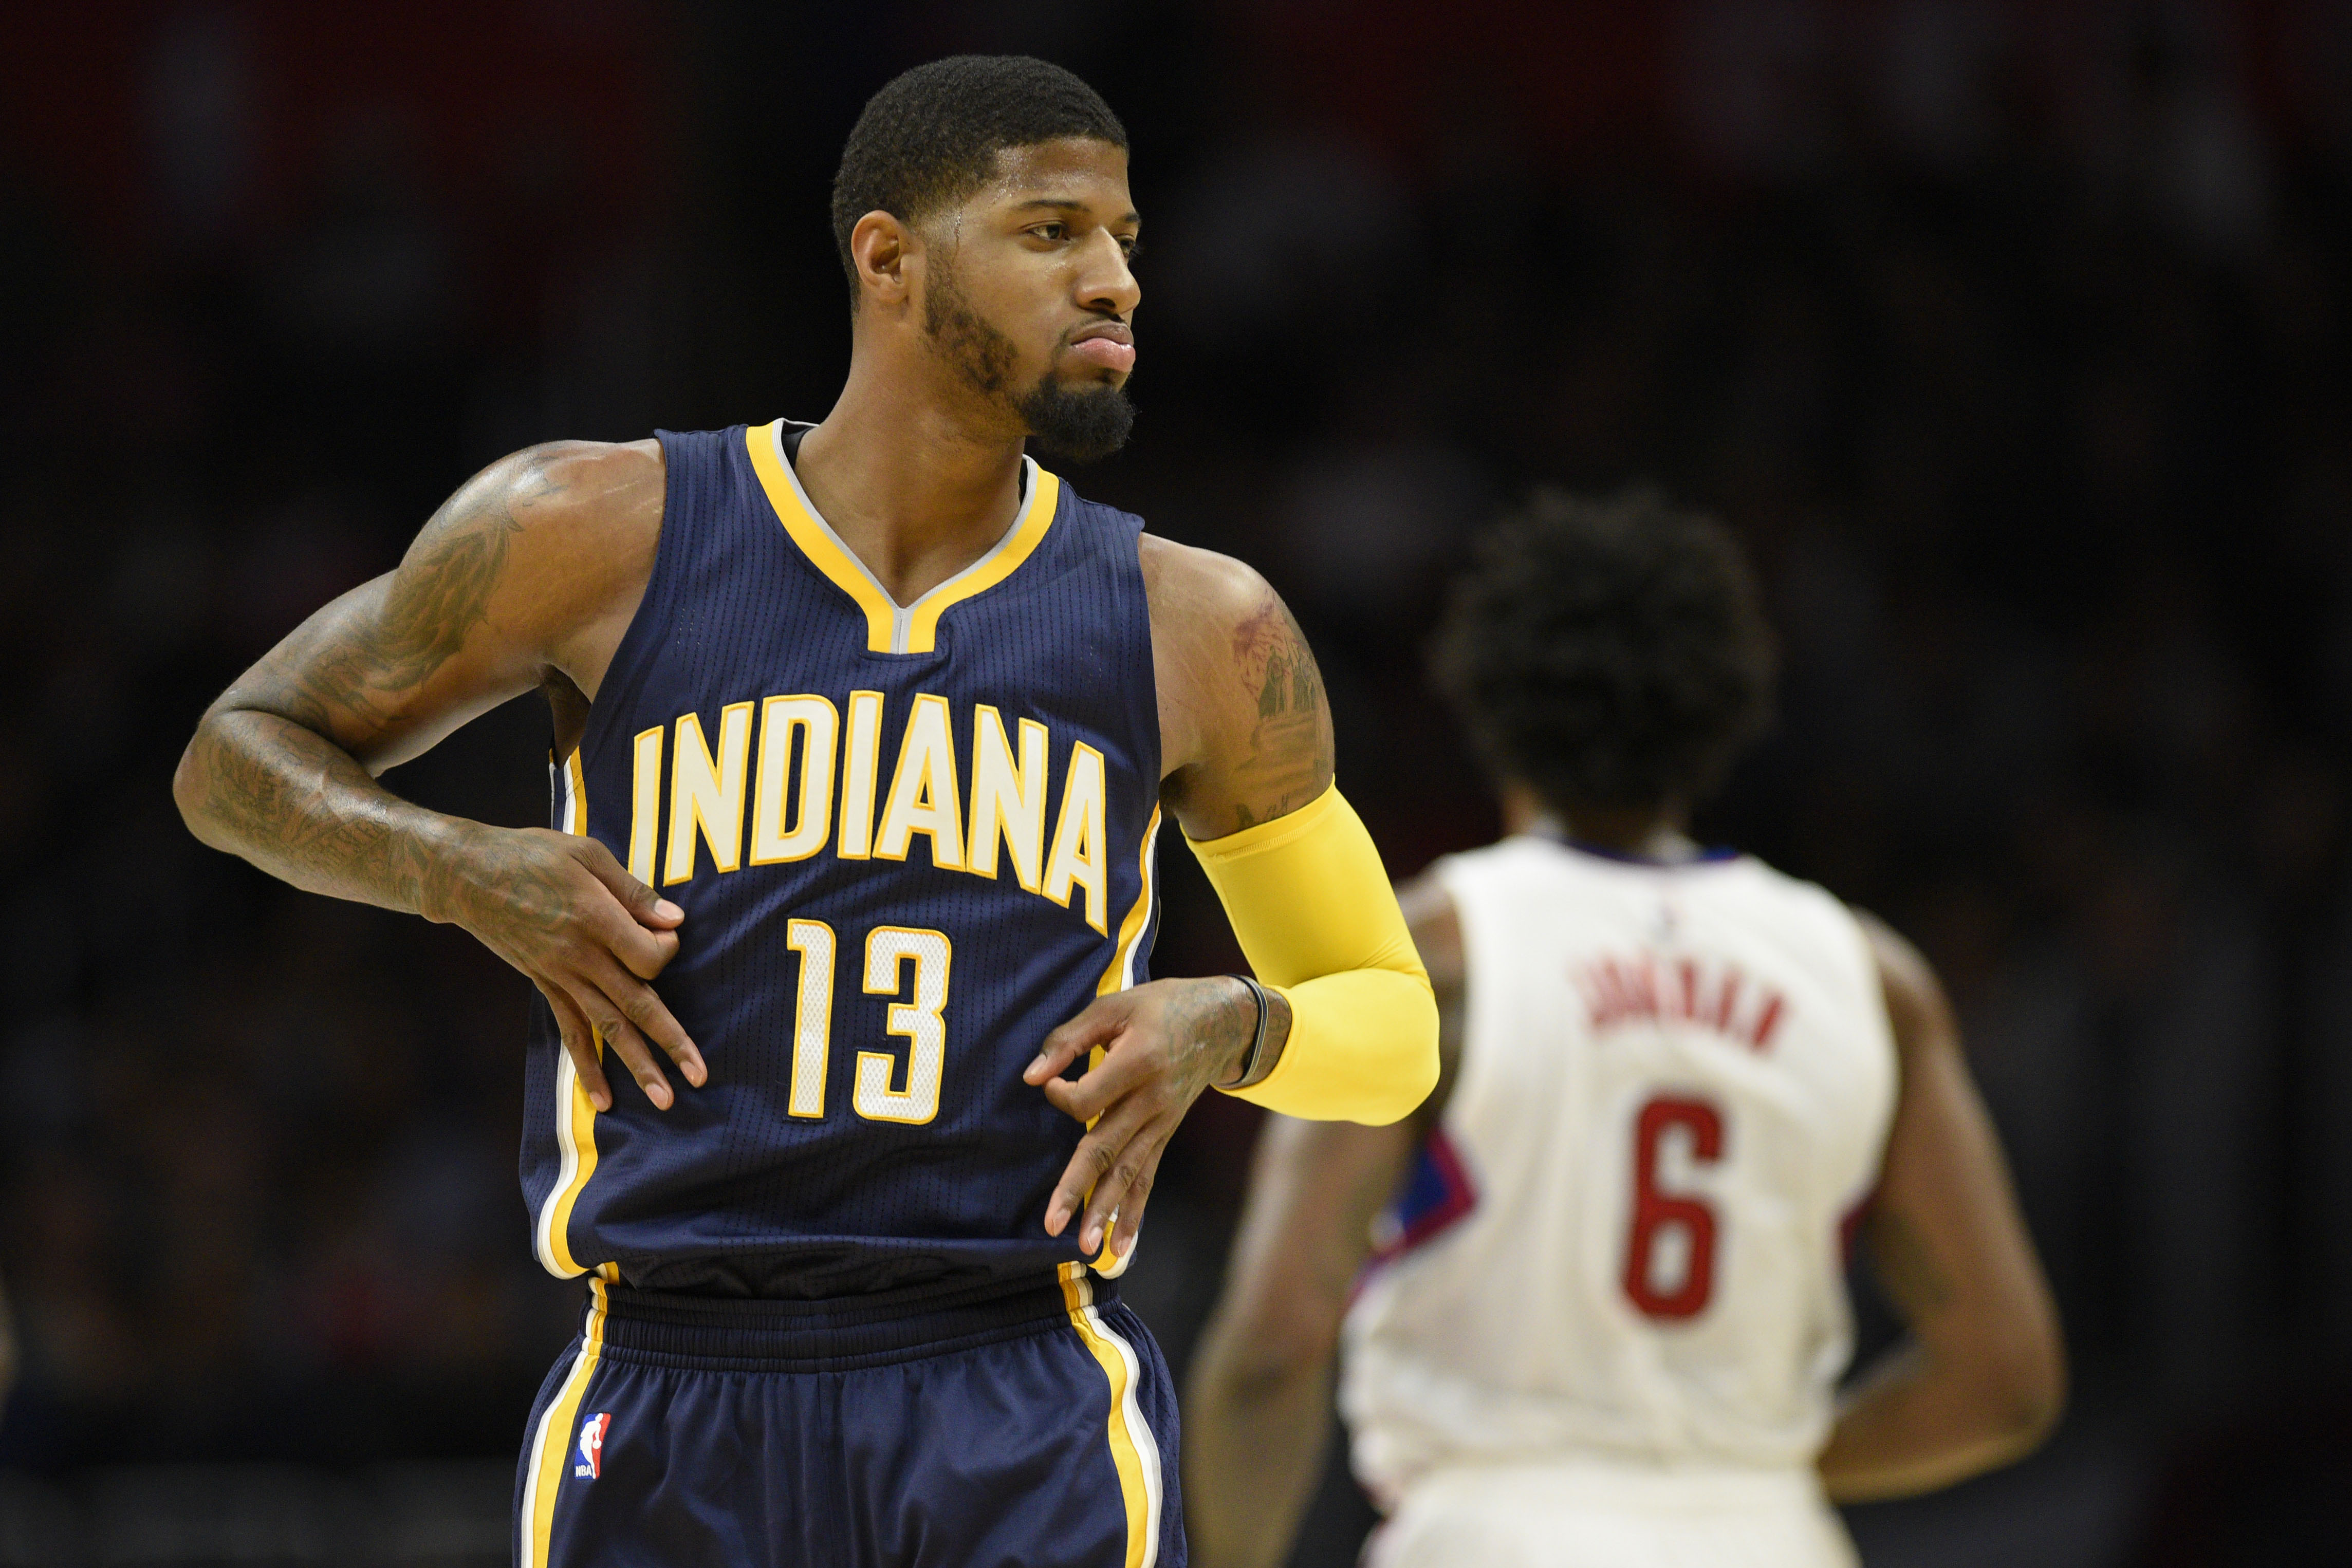 8969877-nba-indiana-pacers-at-los-angeles-clippers